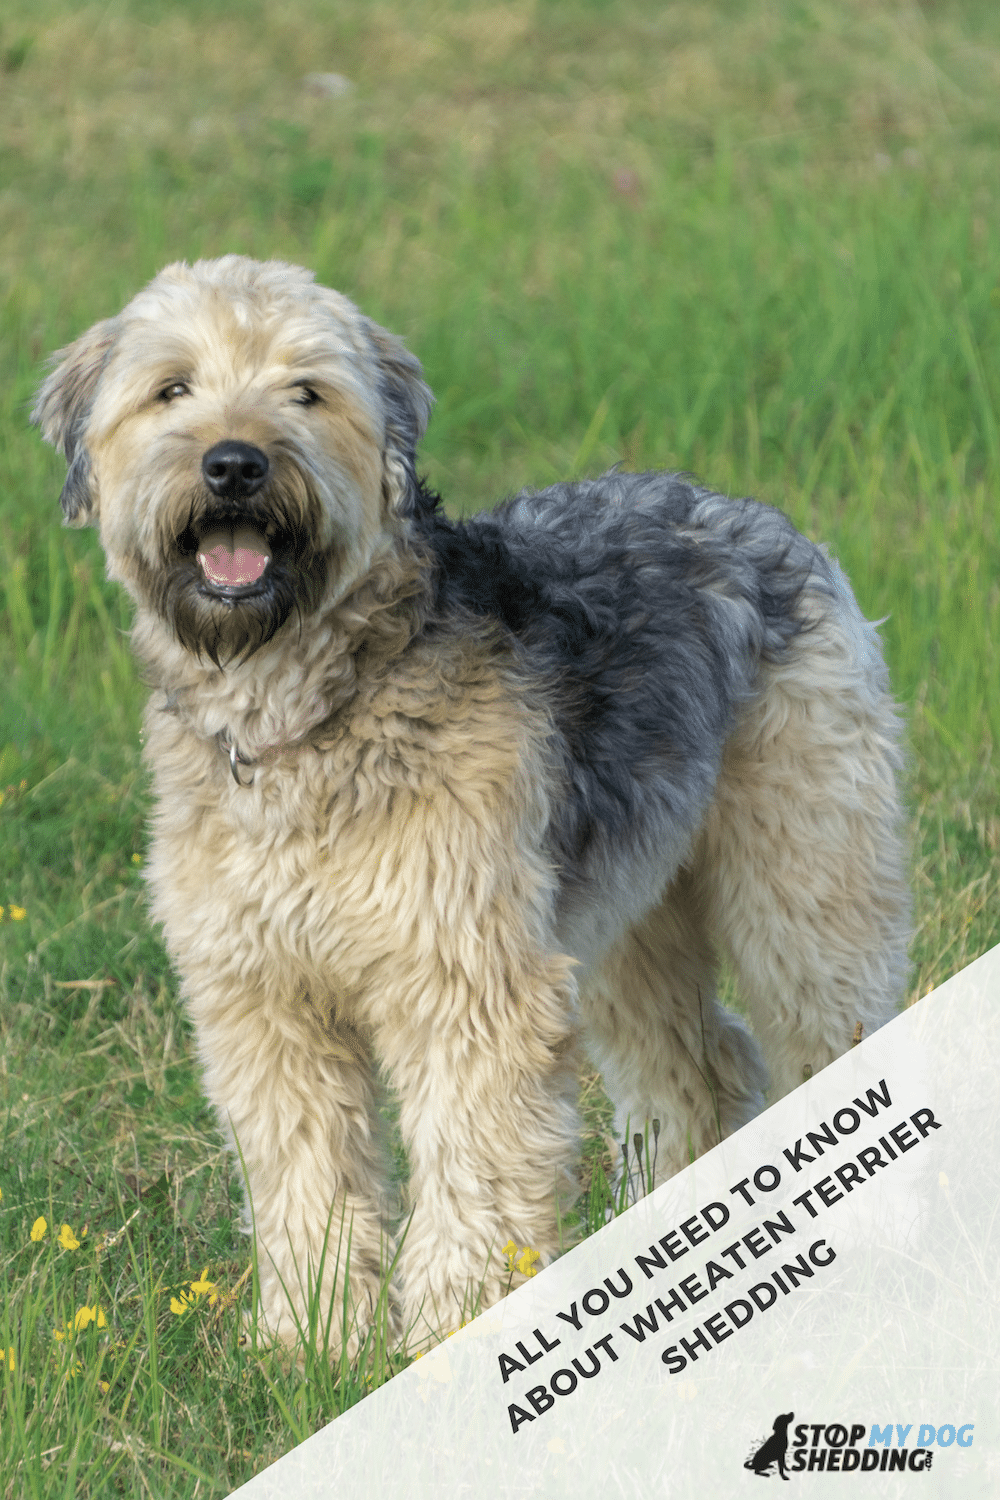 Do Soft Coated Wheaten Terriers Shed?